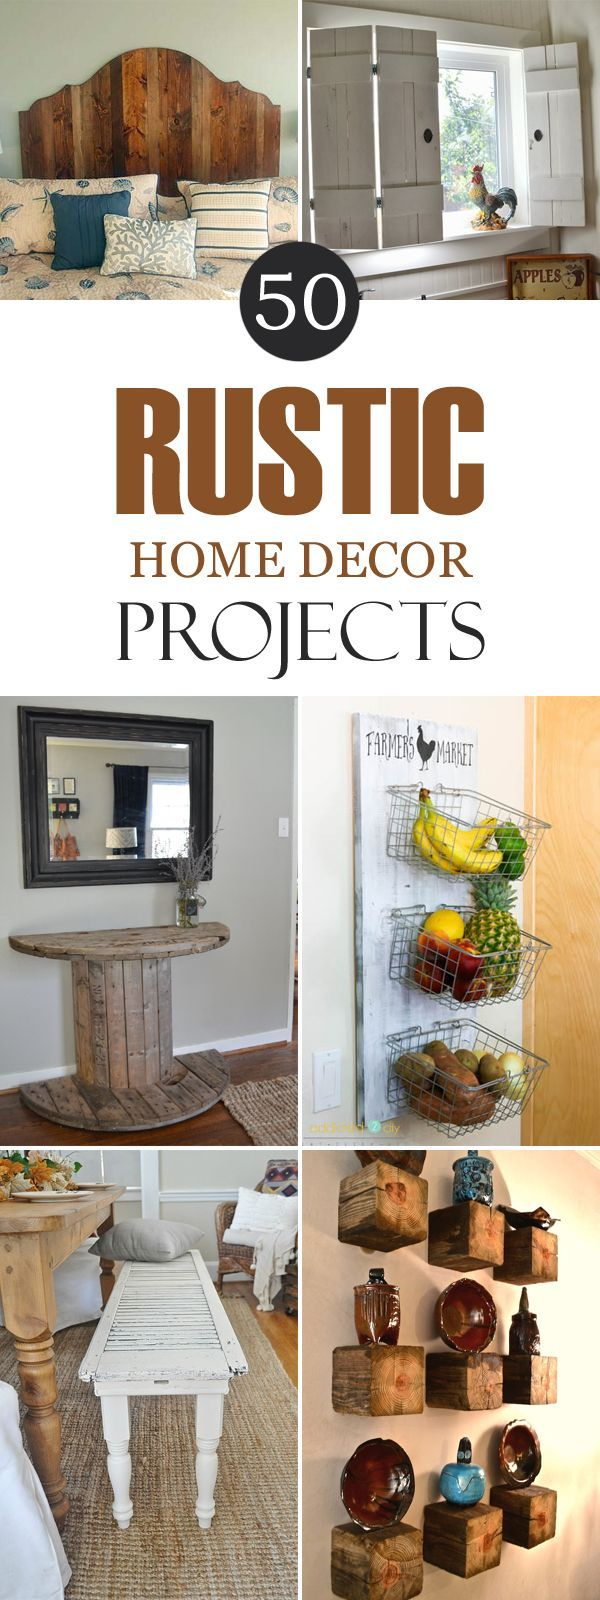 25+ best Rustic living decor ideas on Pinterest | Wooden corner ...